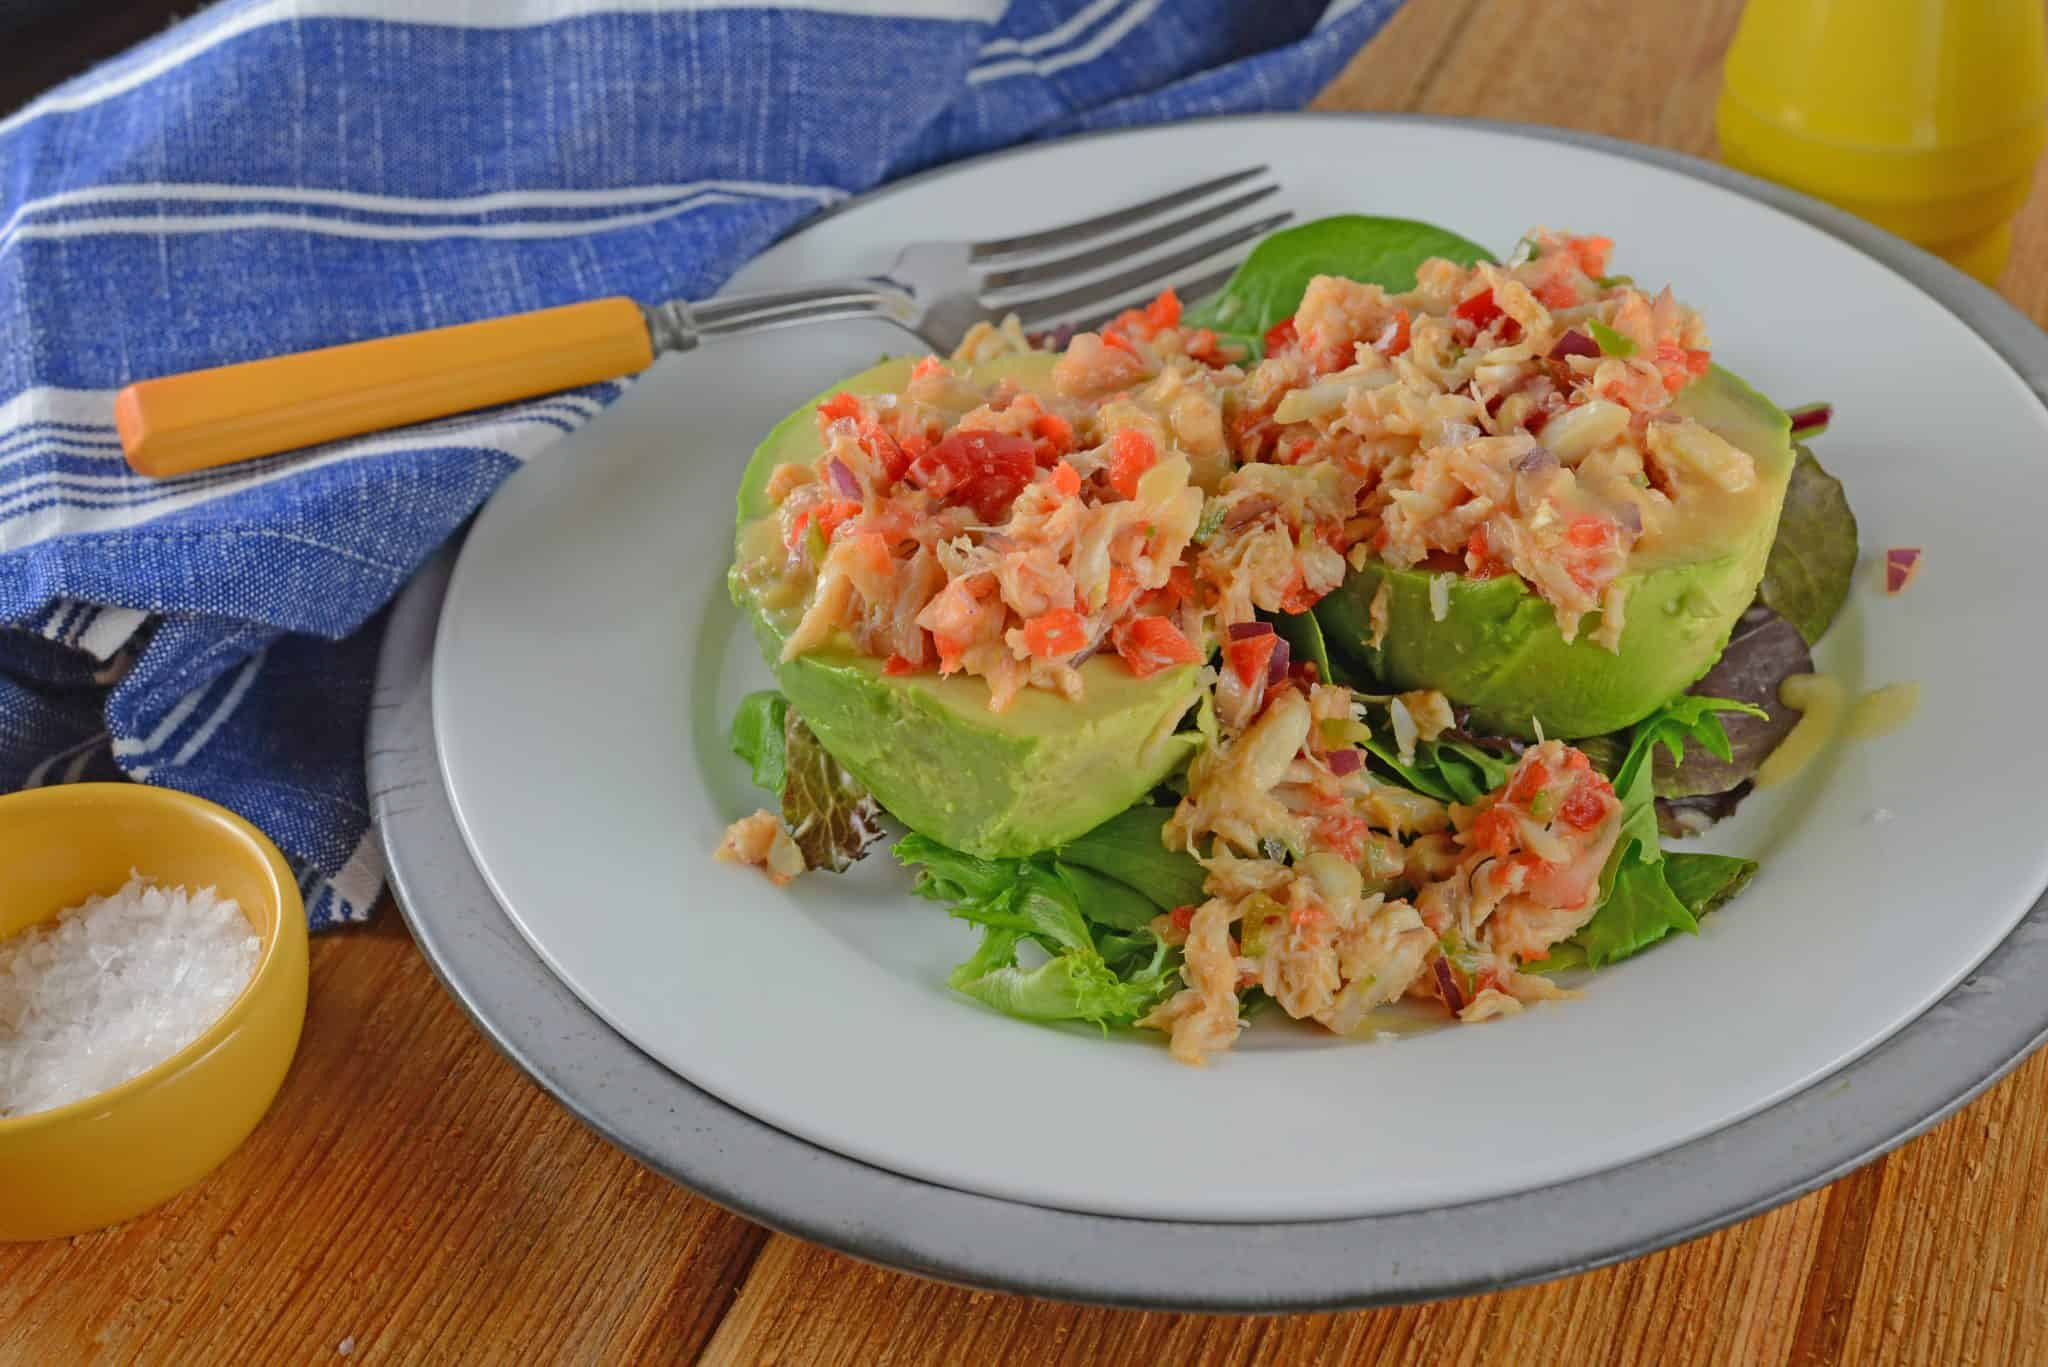 Crab and Avocado Salad is a simple and delicious salad. It combines avocado, red onion, jalapeno, bell peppers, crab, and topped off with miso dressing! #avocadosalad #recipeswithcrab #crabmeat www.savoryexperiments.com